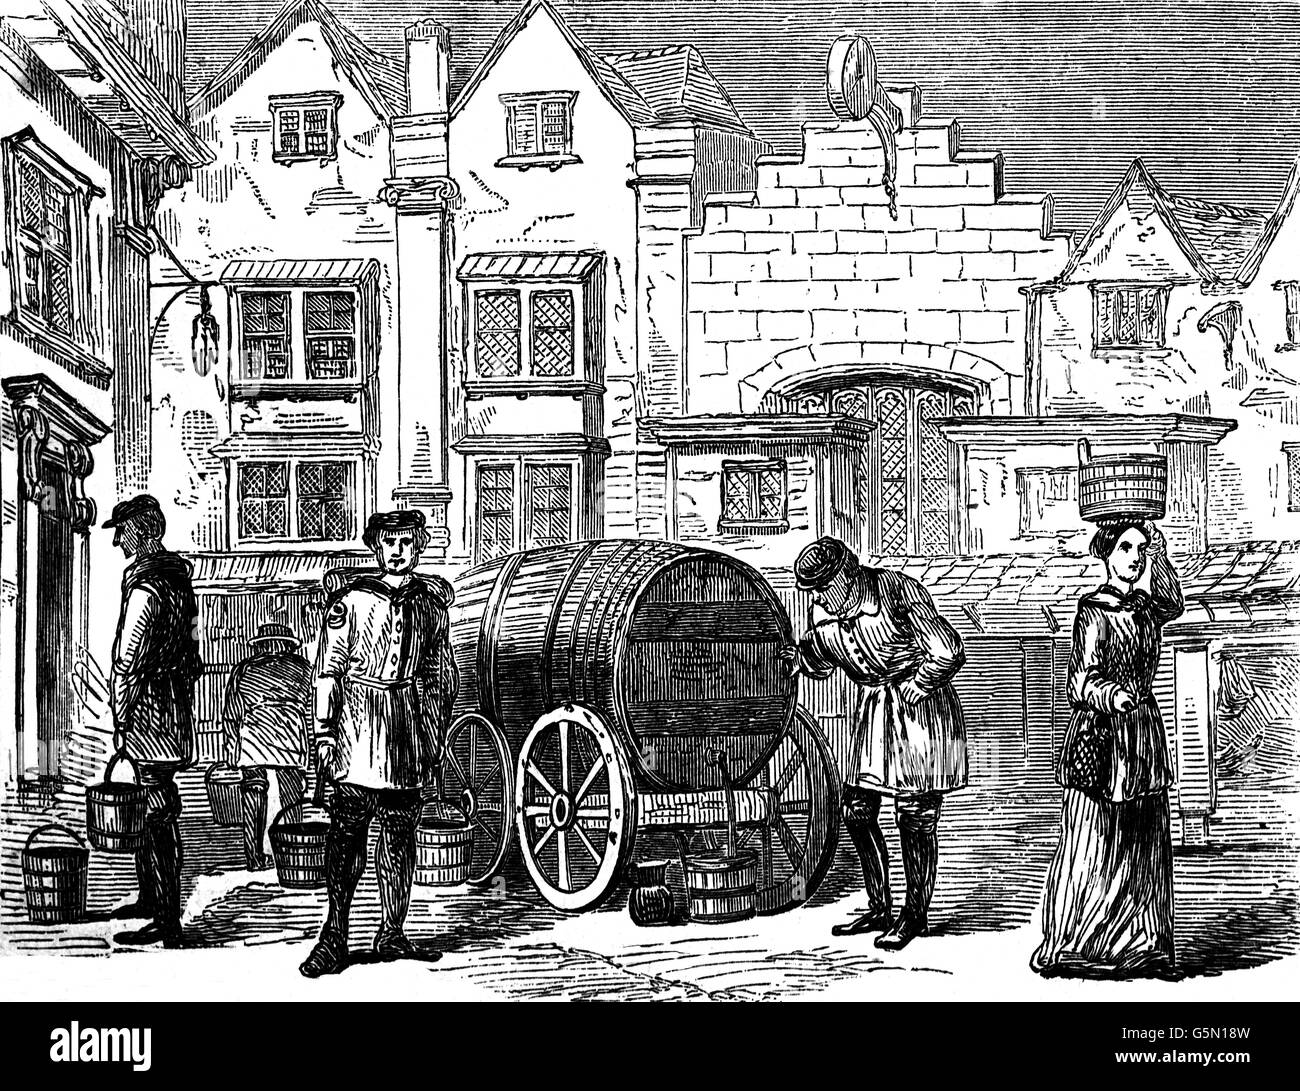 Old London Water Carriers in the 17th Century. - Stock Image